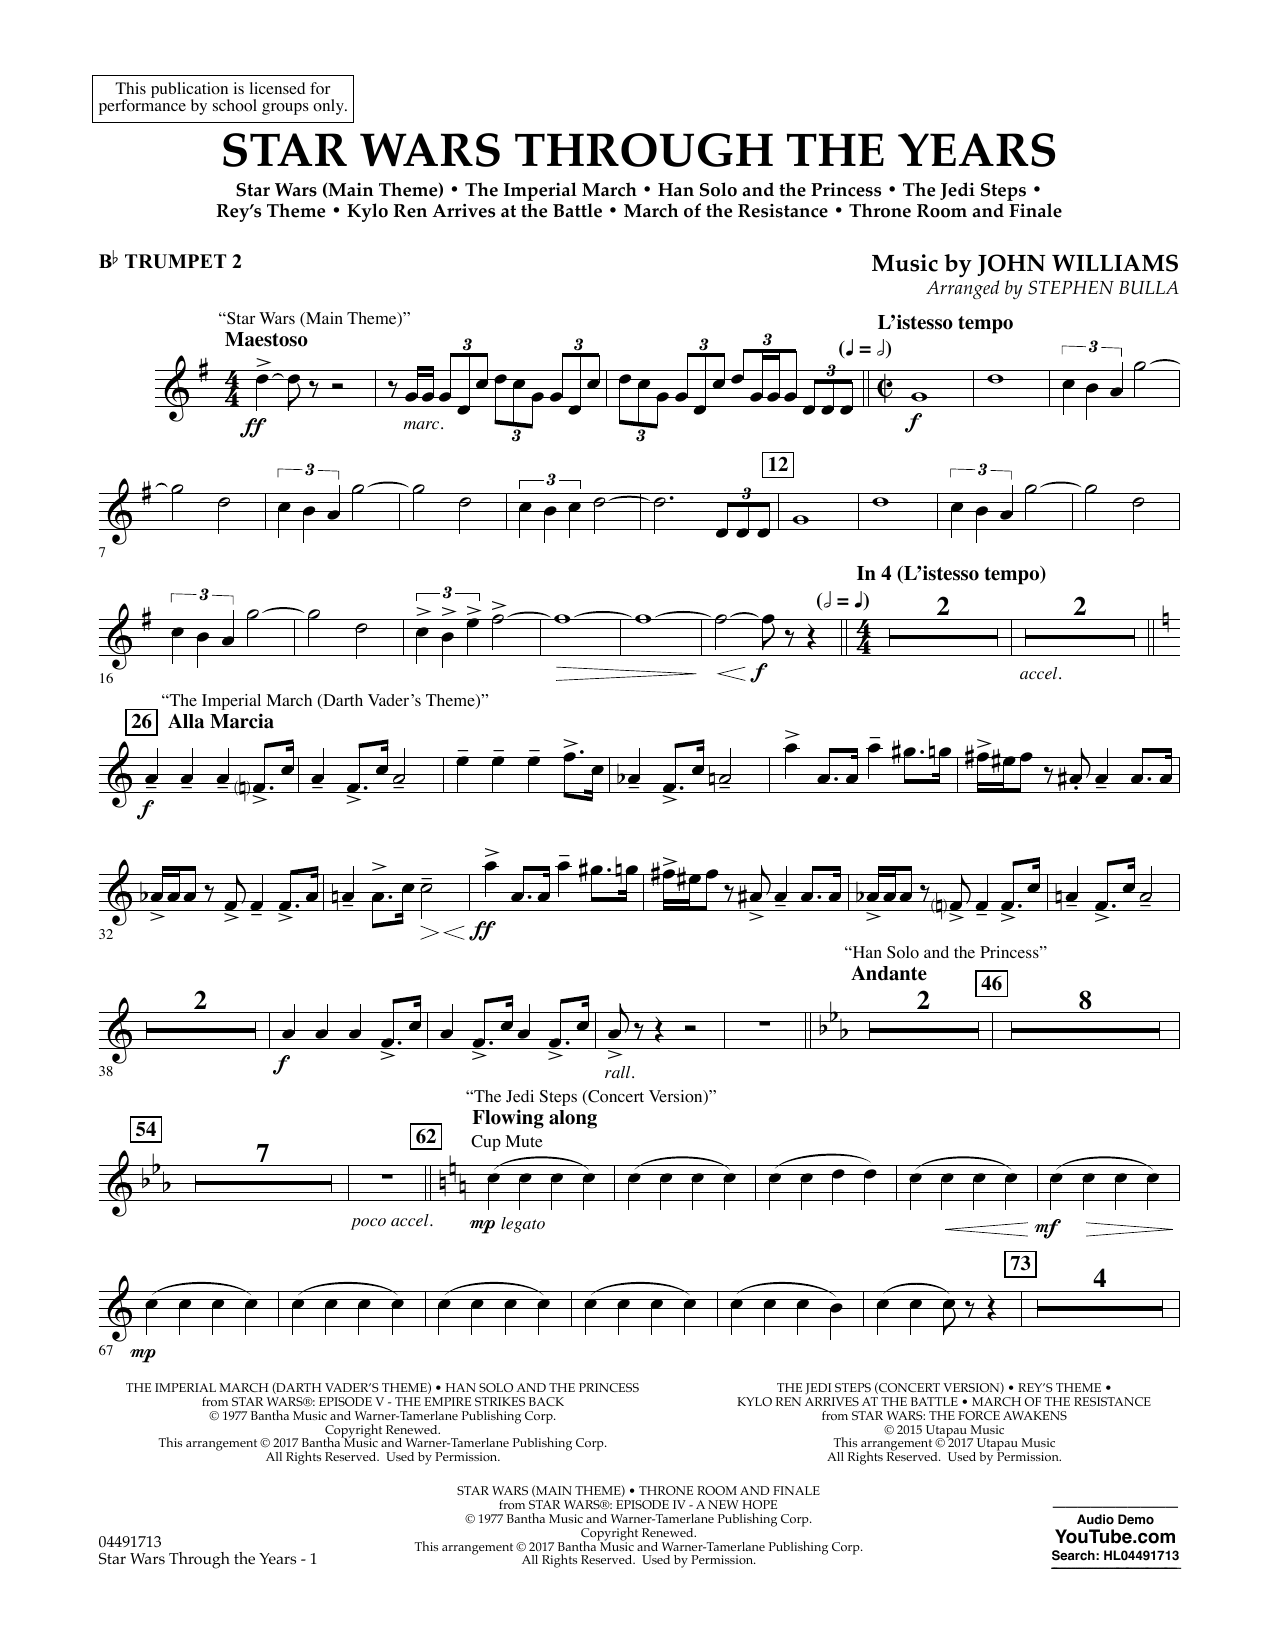 Star Wars Through the Years - Bb Trumpet 2 Sheet Music